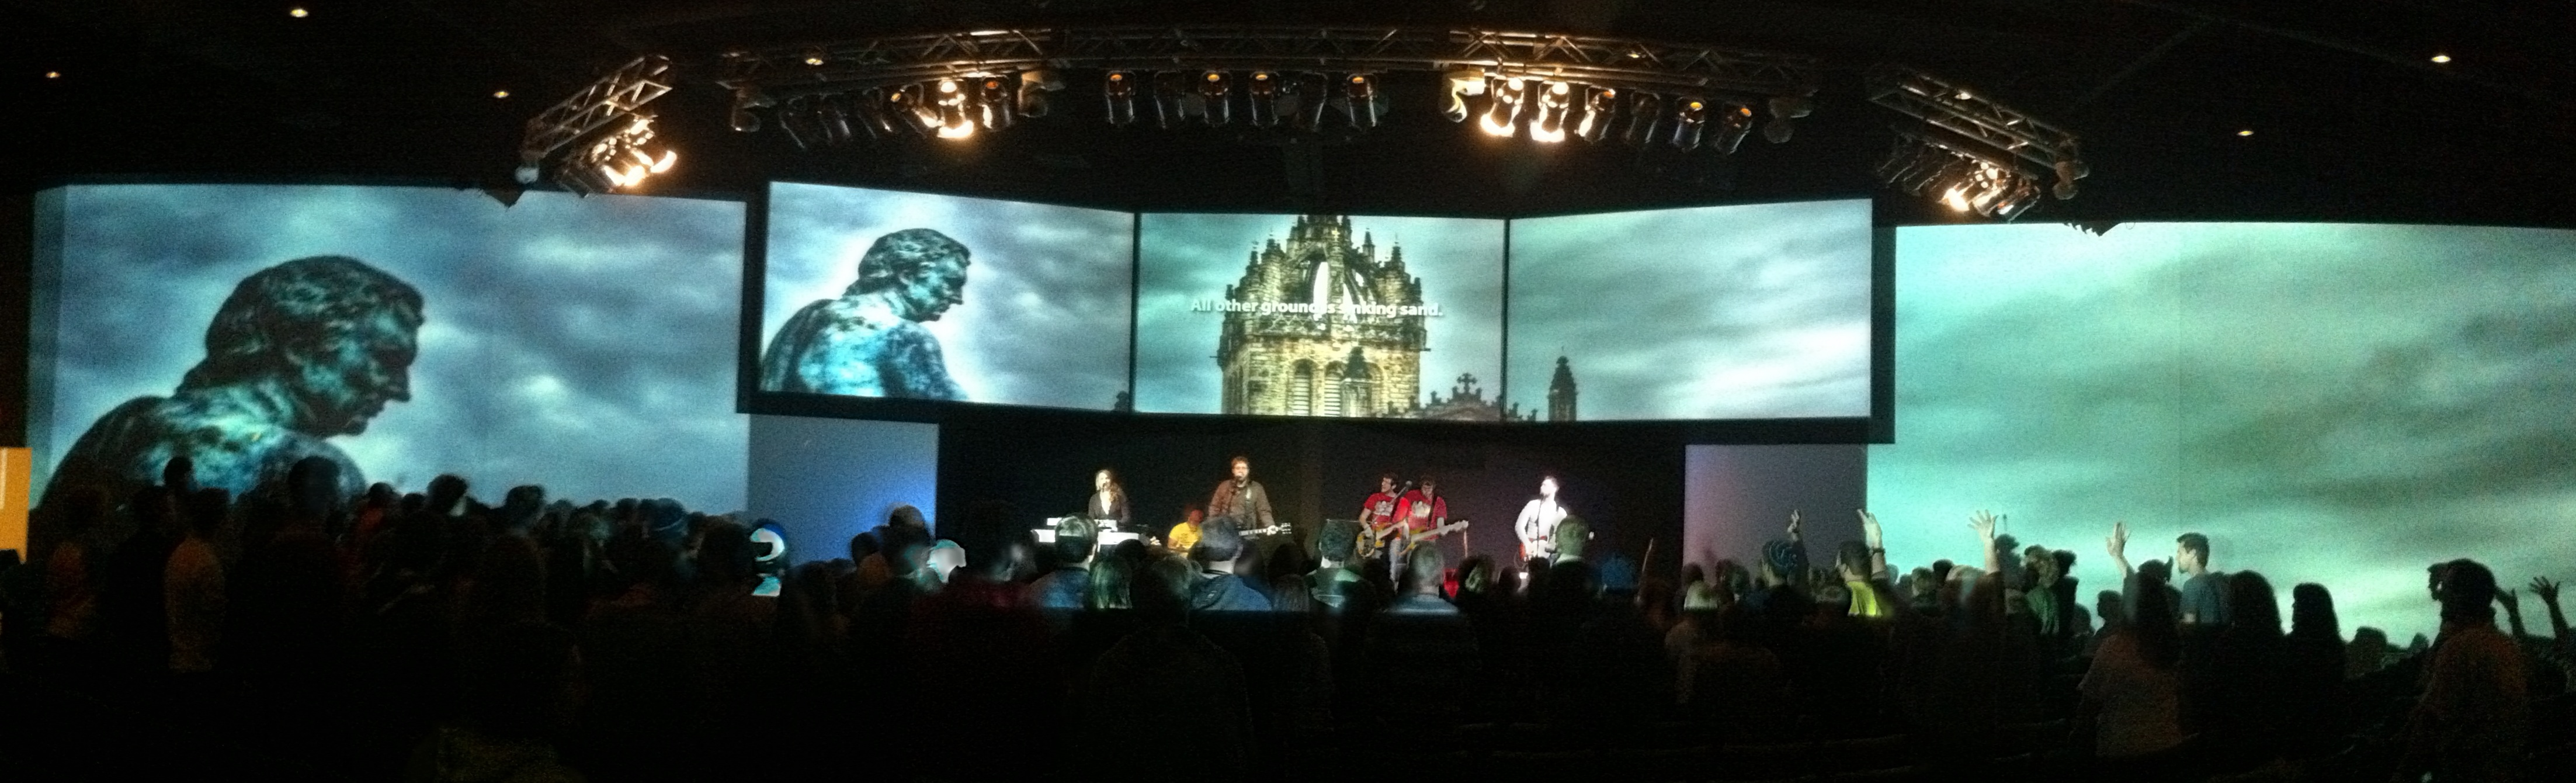 Environmental Projection & Multi-screen | TripleWide Media